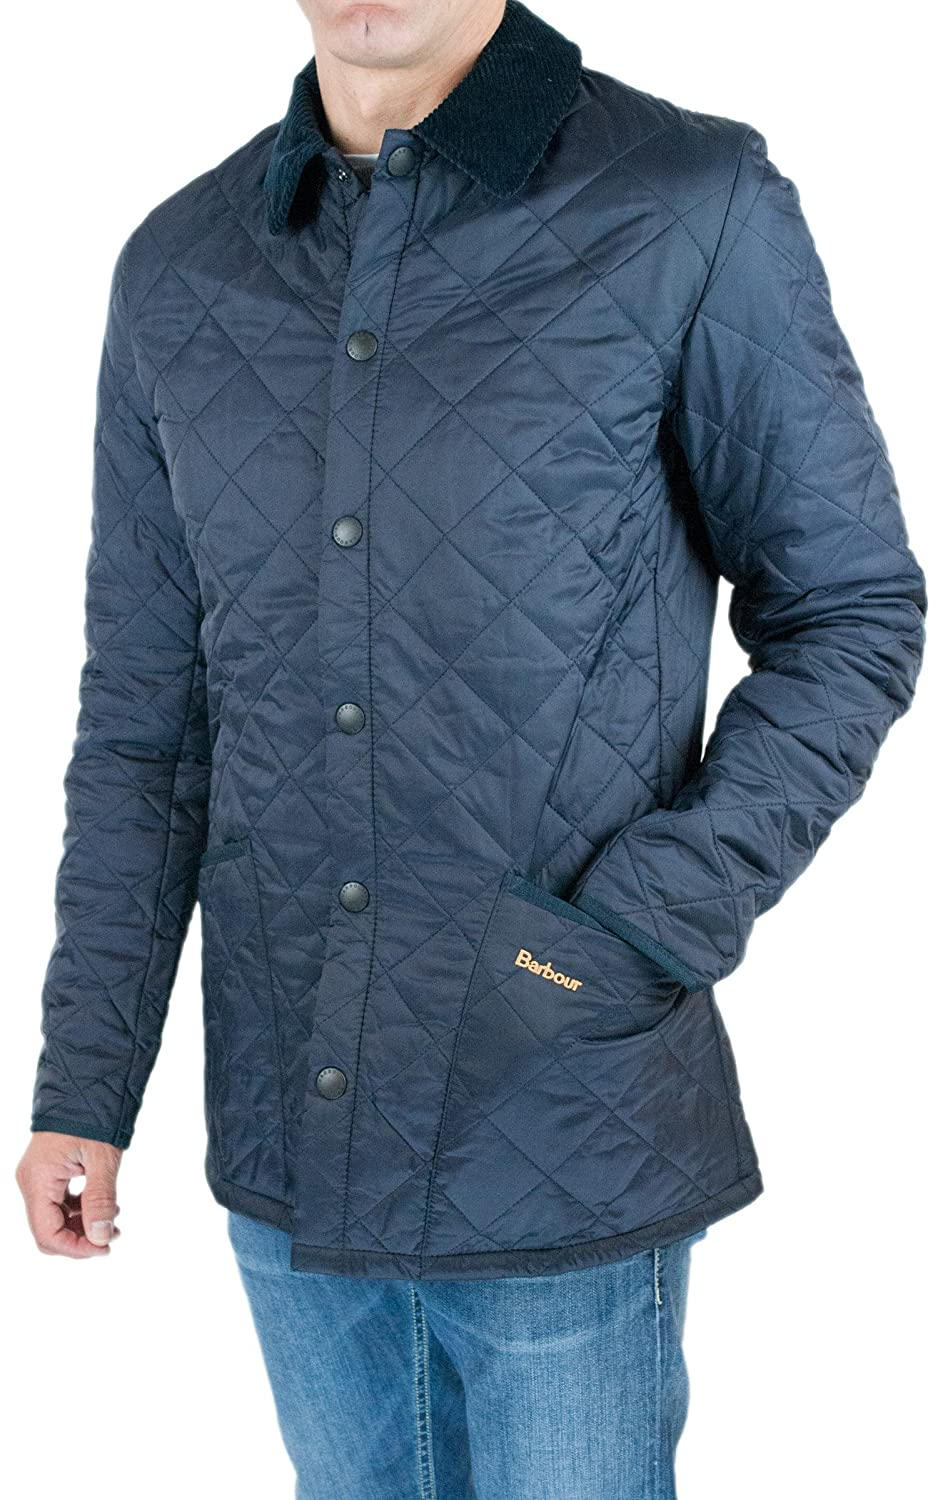 Barbour - Chaqueta - para hombre turquesa Large : Amazon.es ...